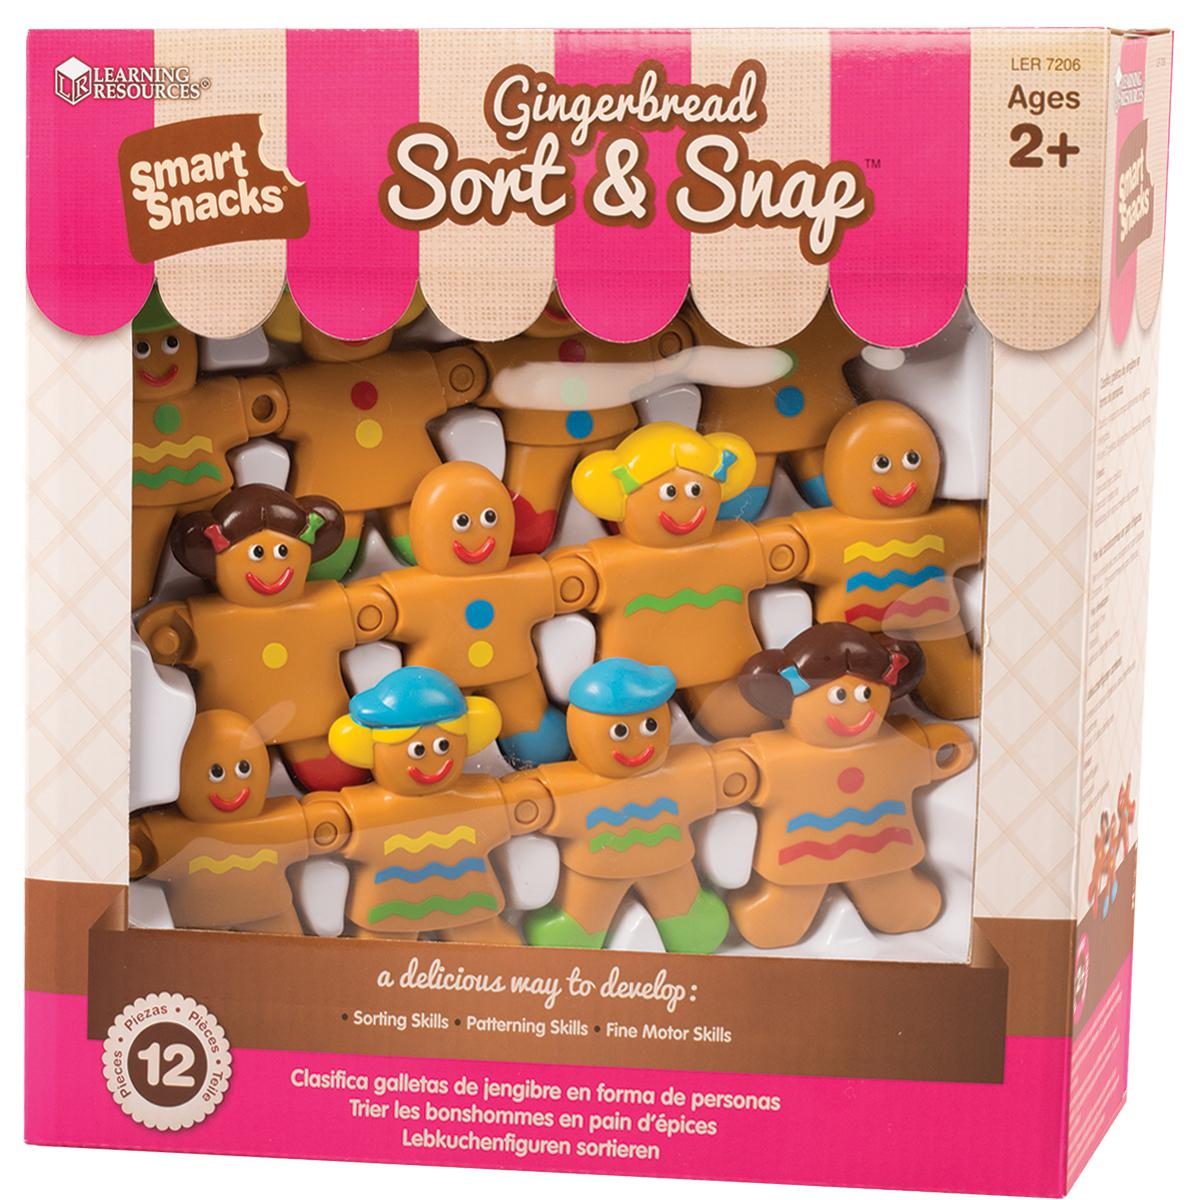 Smart Snacks: Gingerbread Sort & Snap